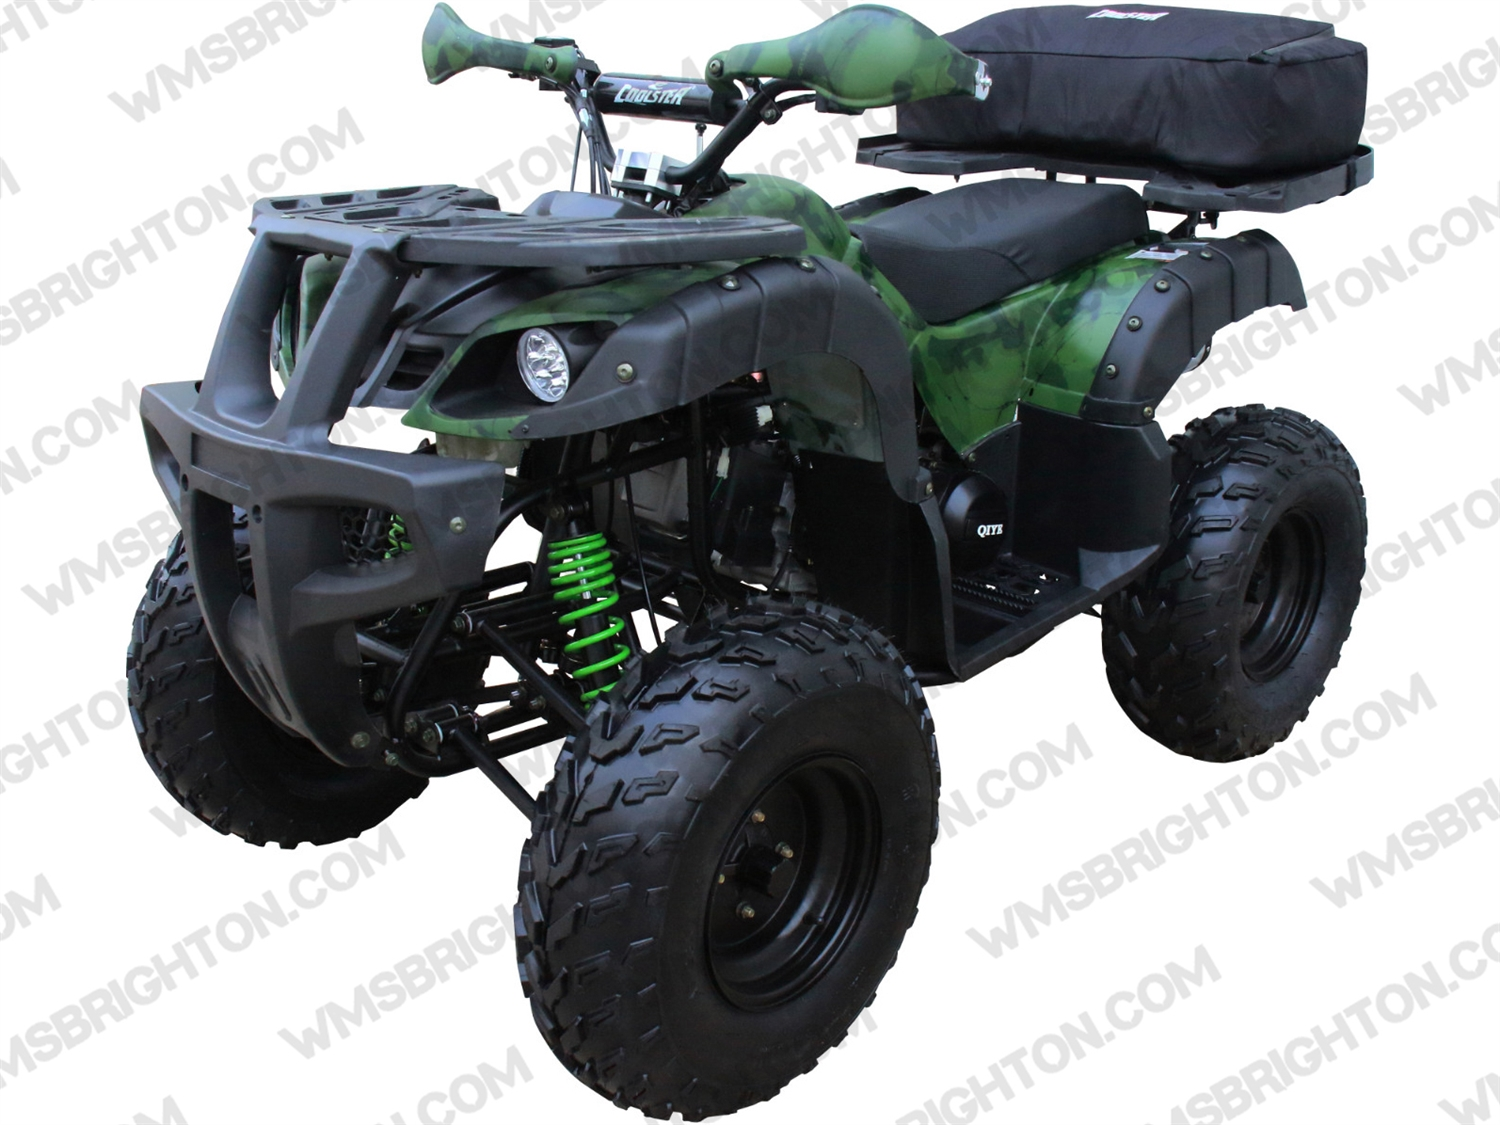 Coolster 150cc Atv Wiring Diagram Manual E Books For Tao 3150dx 4 Full Auto Atvcoolster 10